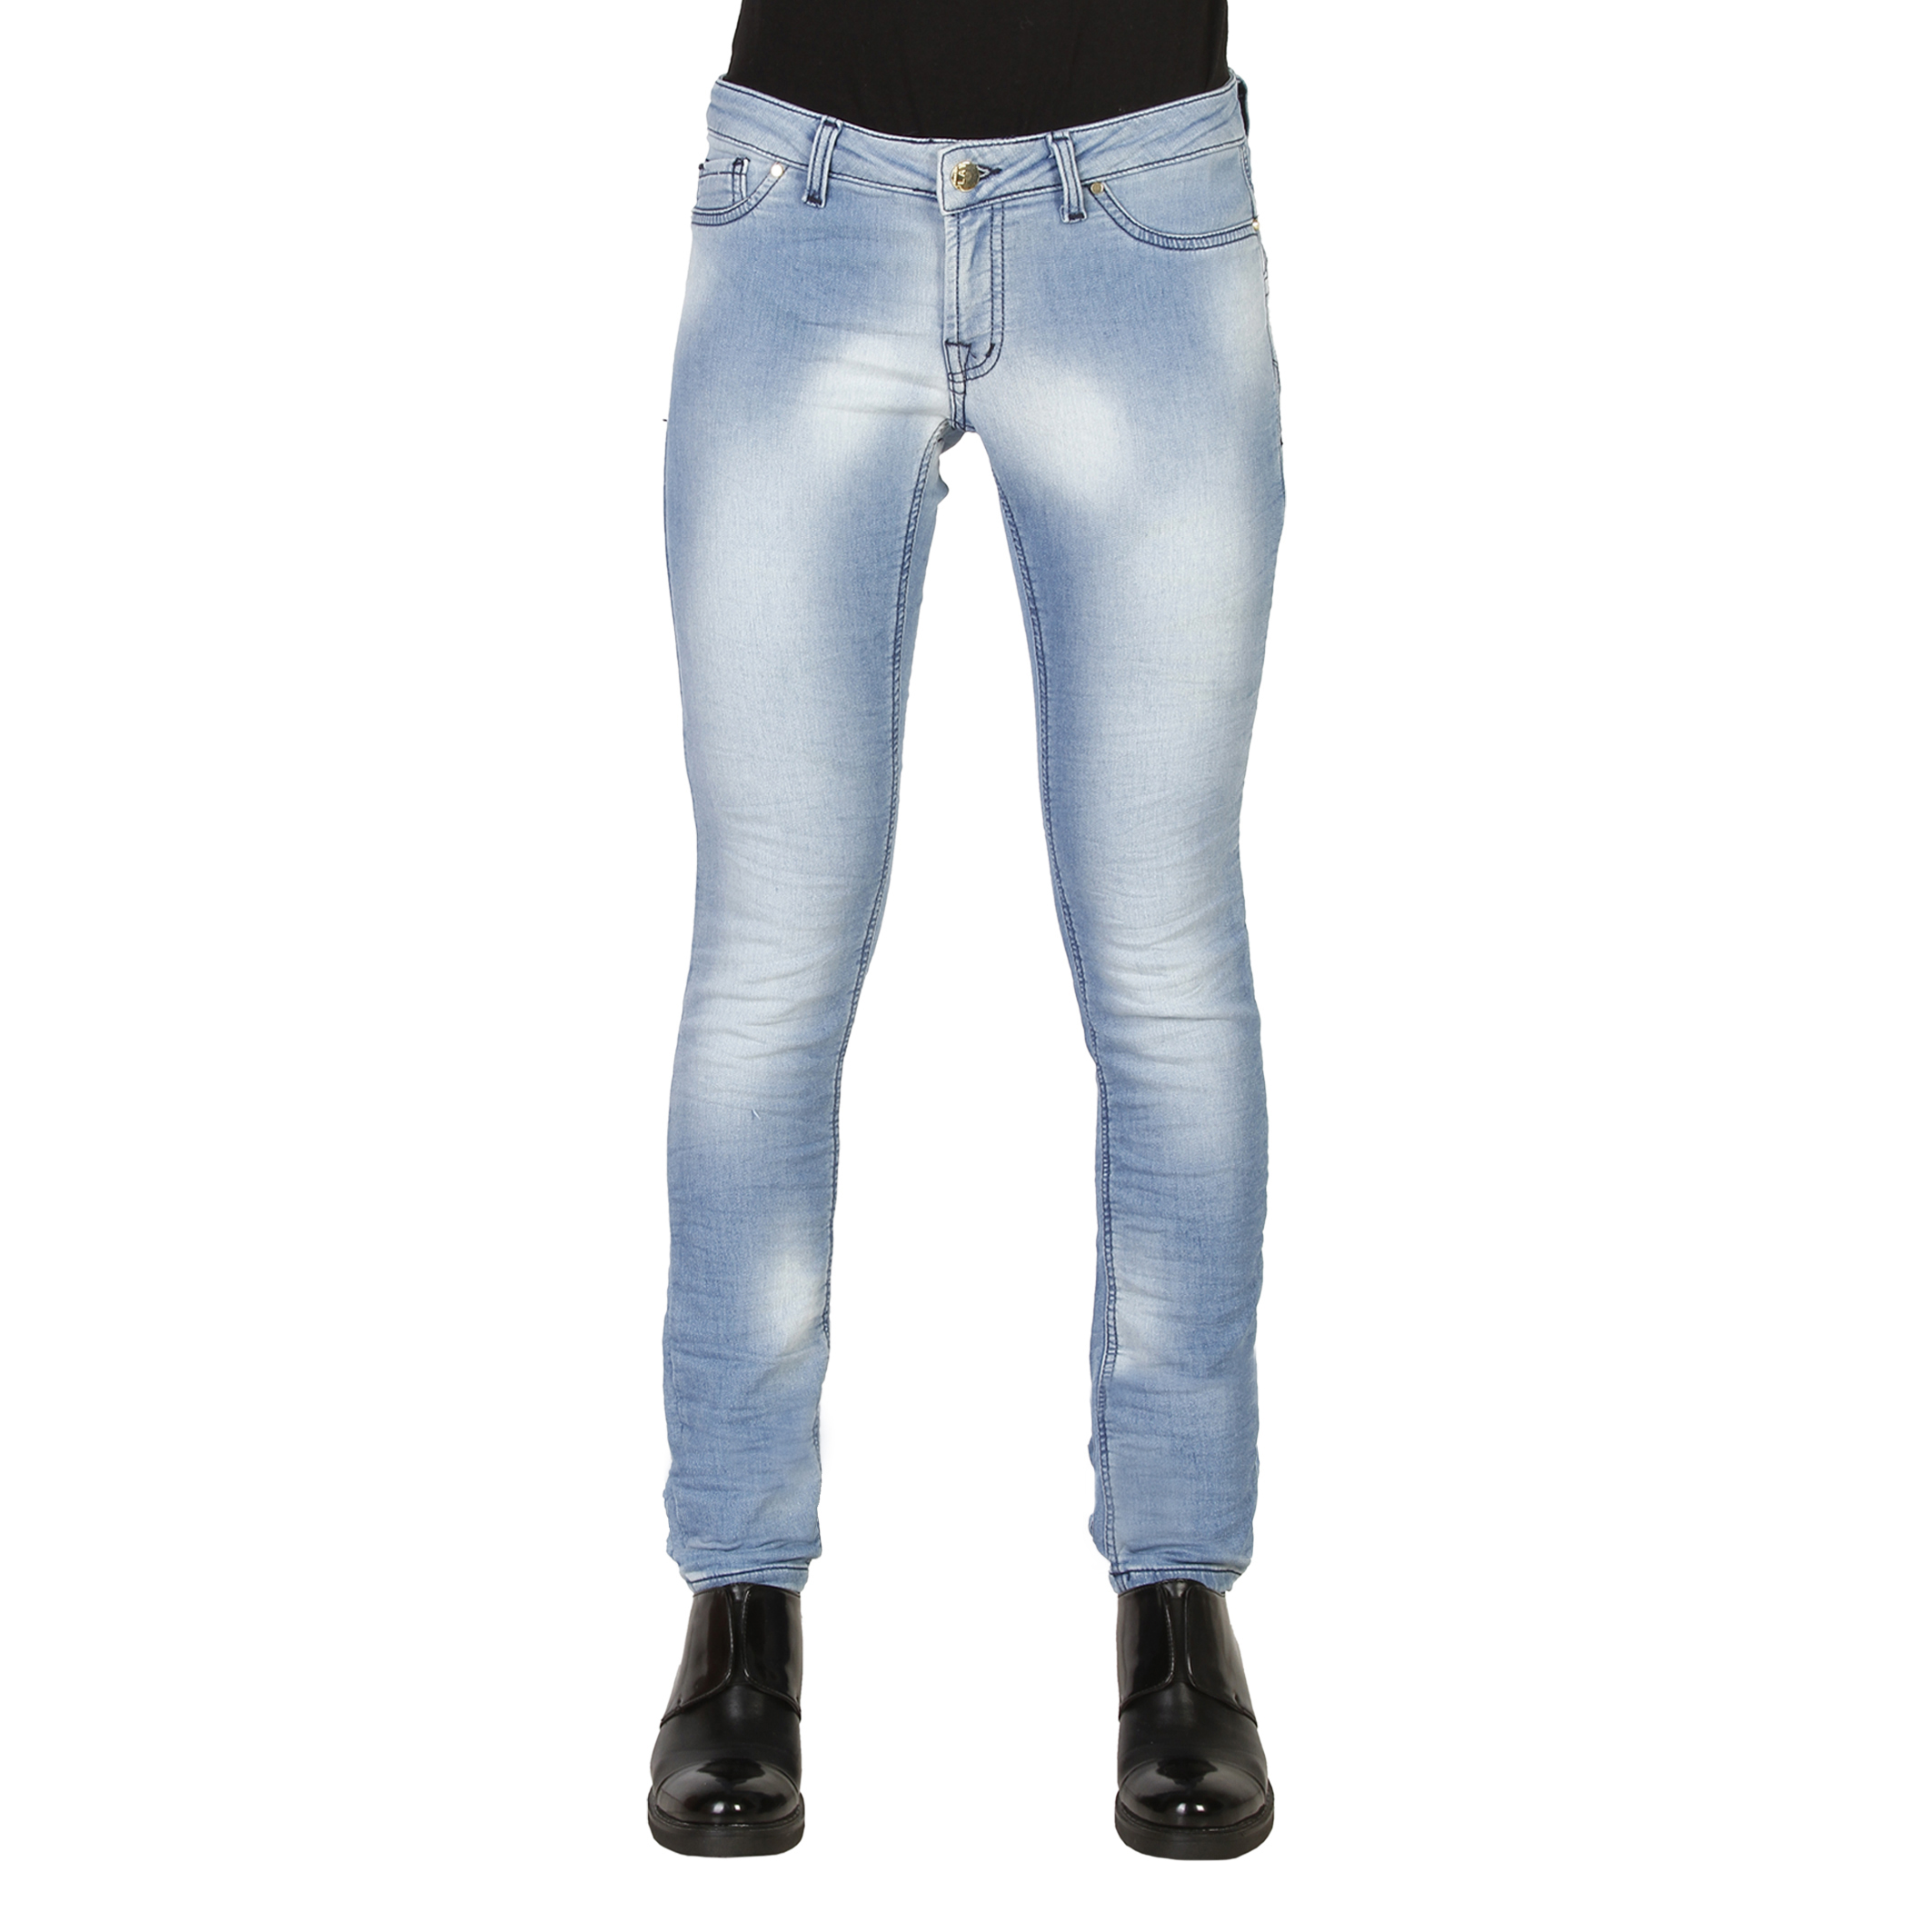 Jeans   Carrera Jeans 000788_0985A blue